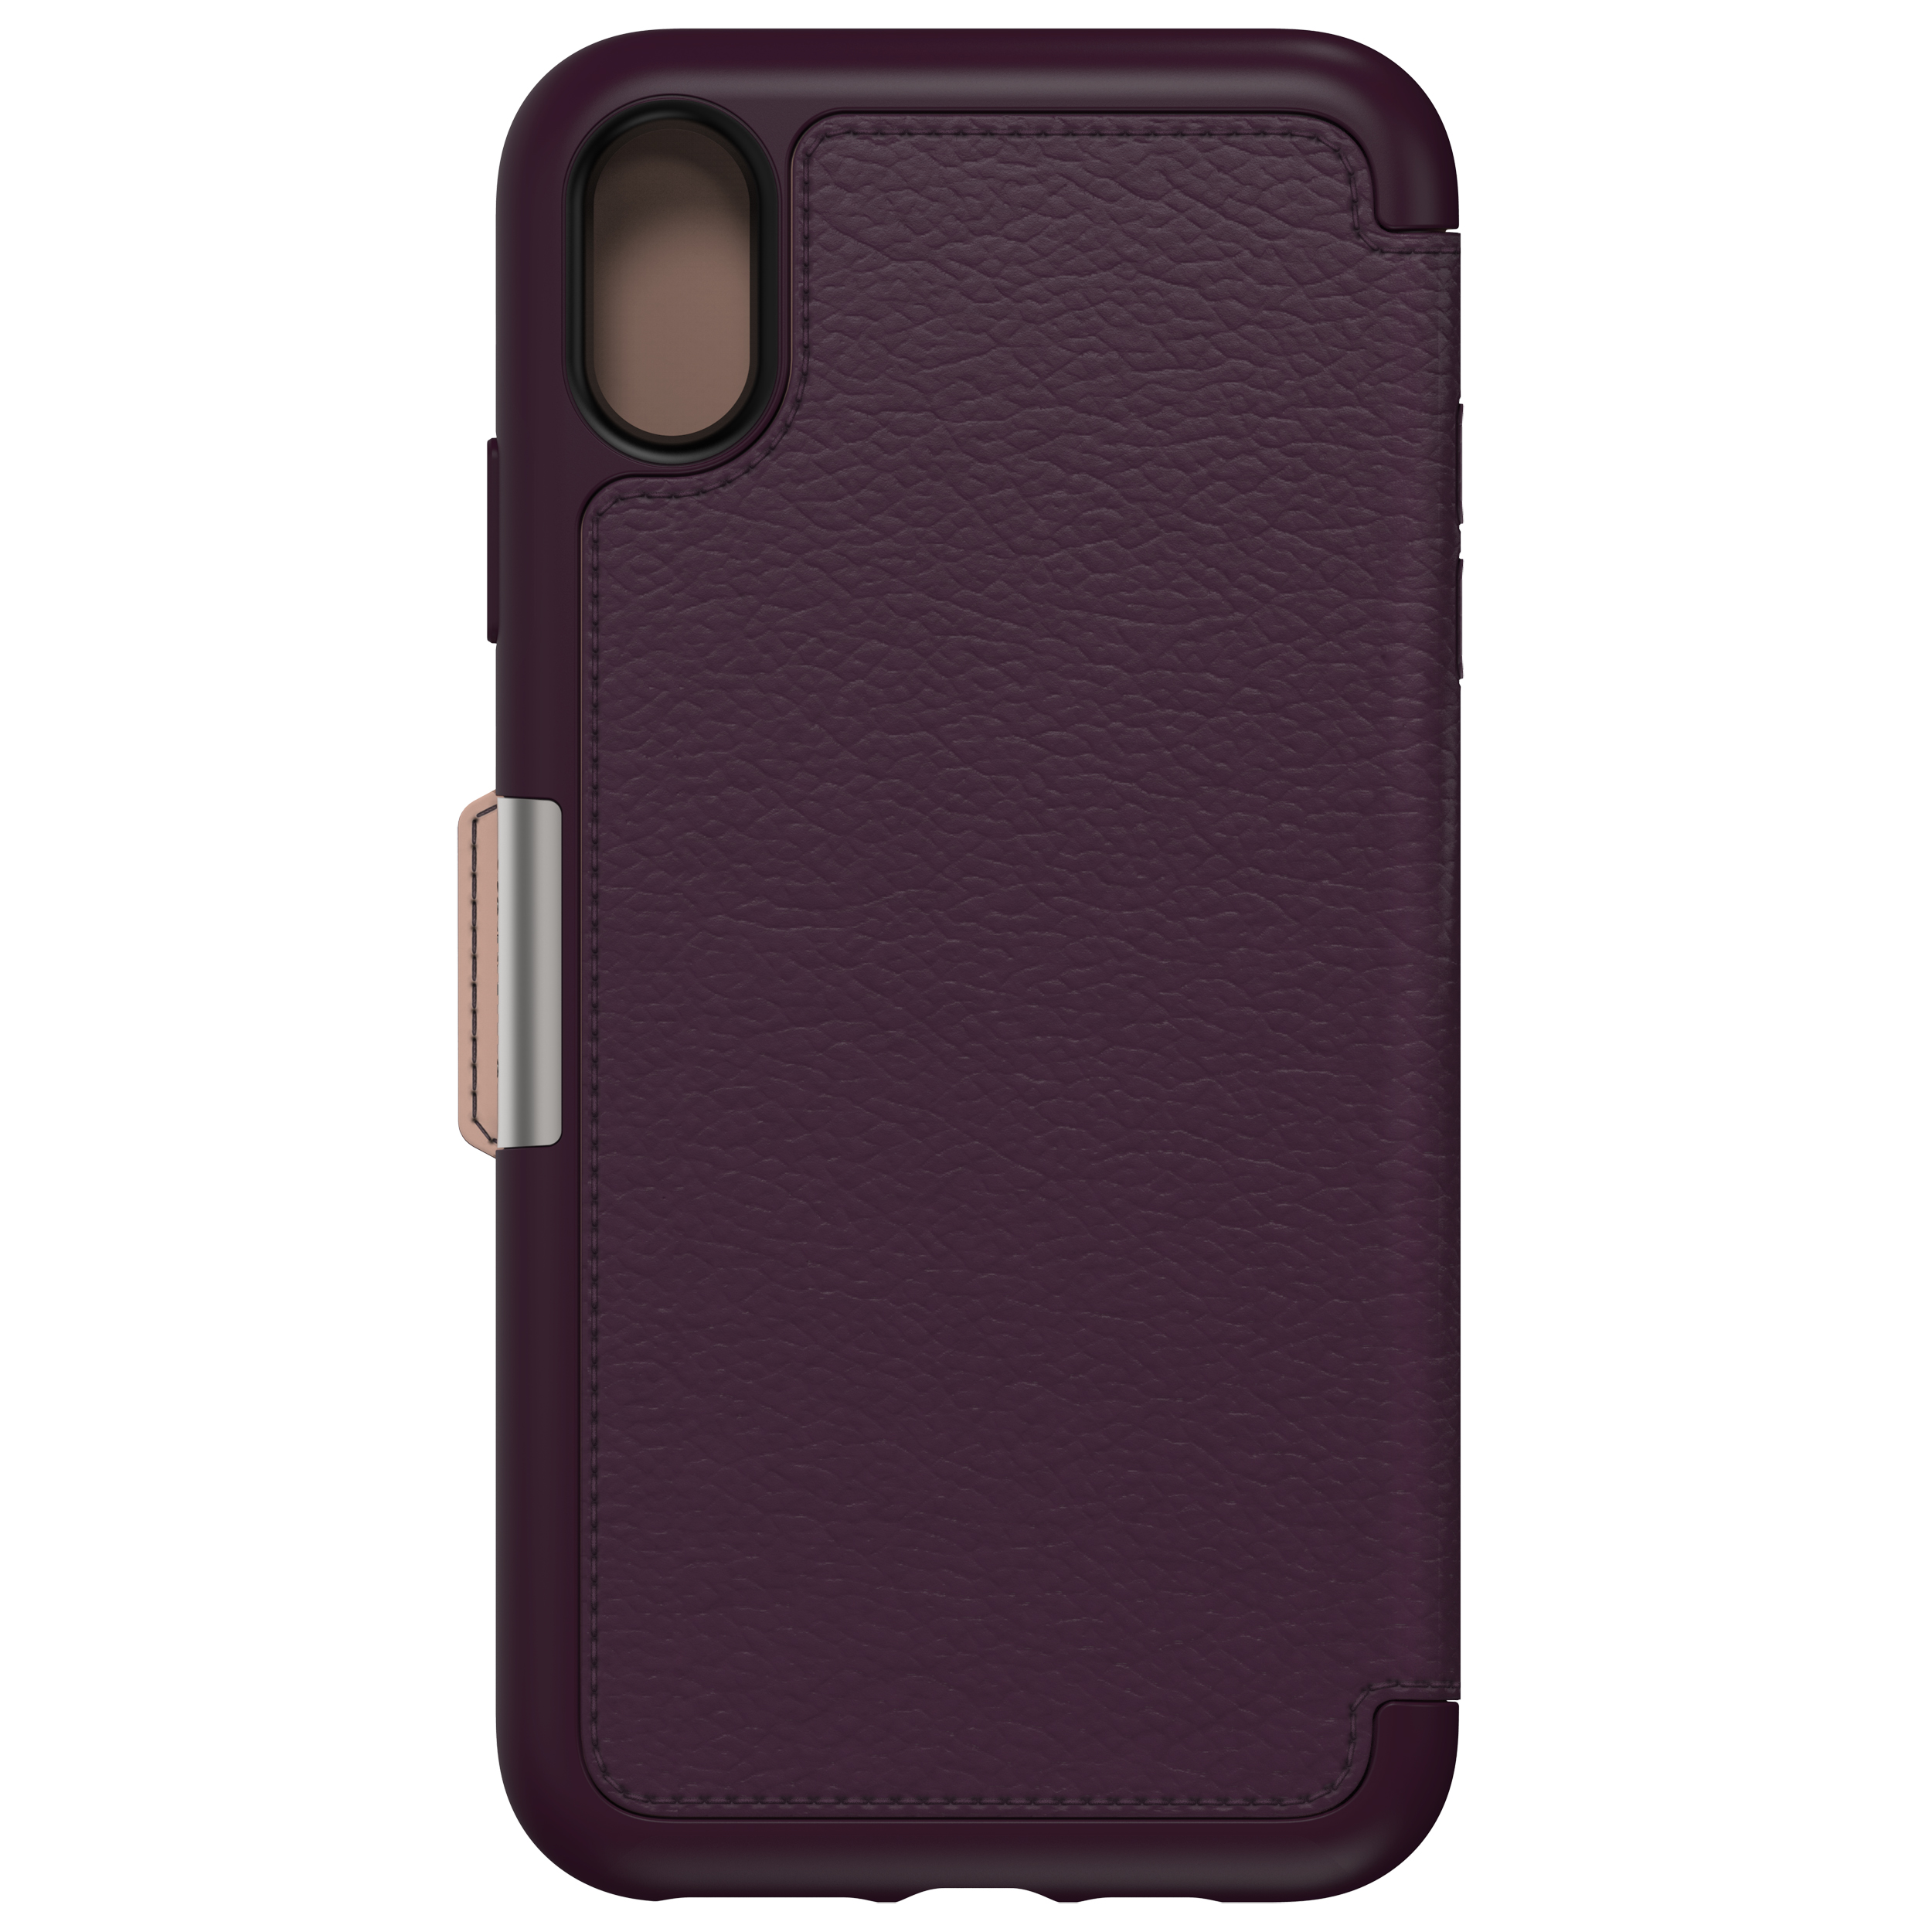 Otterbox Strada Series Case for iPhone Xs Max, Royal Blush by OtterBox